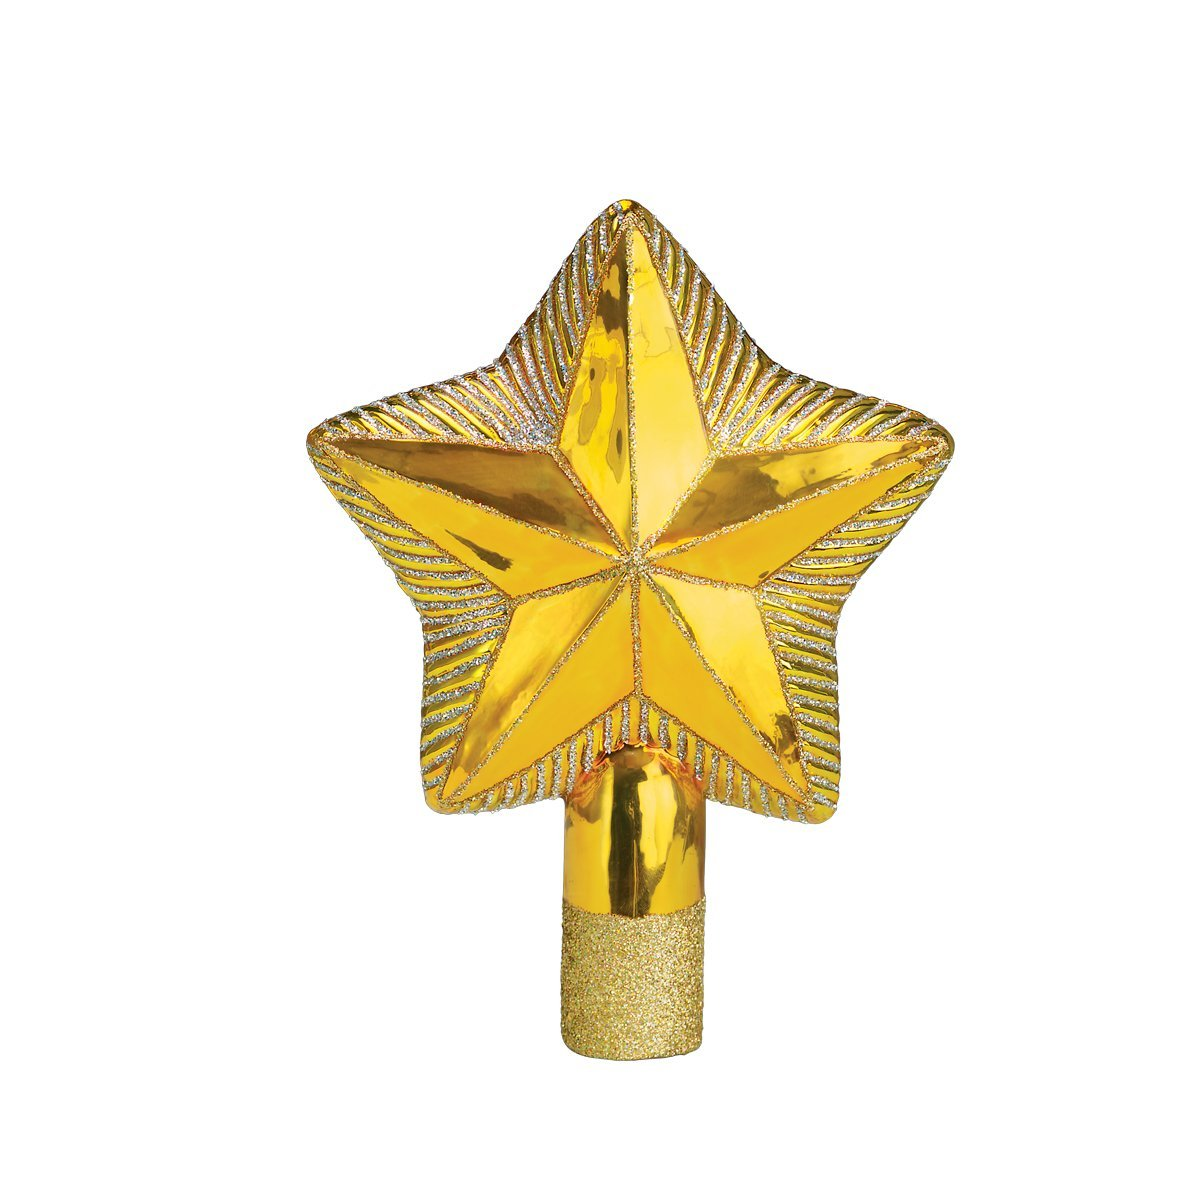 Old World Christmas Ornaments: Star Tree Top Glass Blown Ornaments for Christmas Tree